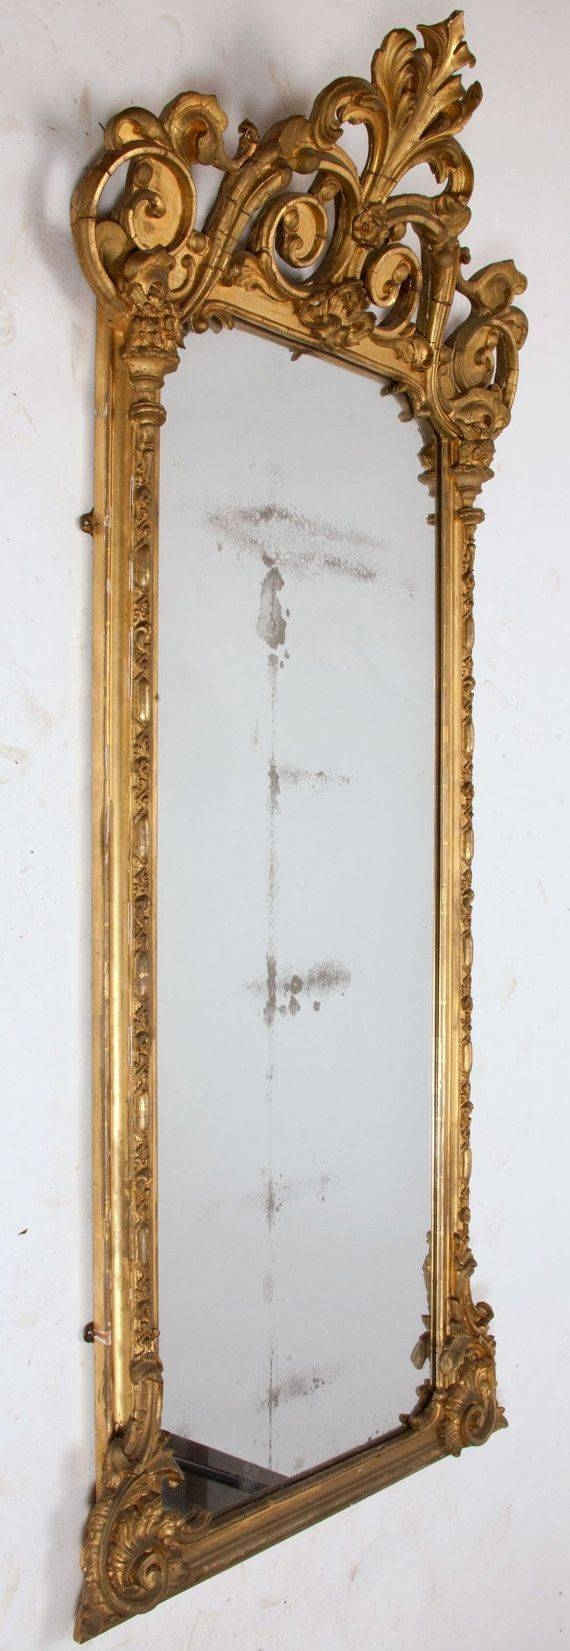 Best 25+ French Mirror Ideas On Pinterest | Antique Mirrors within Ornate Mirrors (Image 8 of 25)